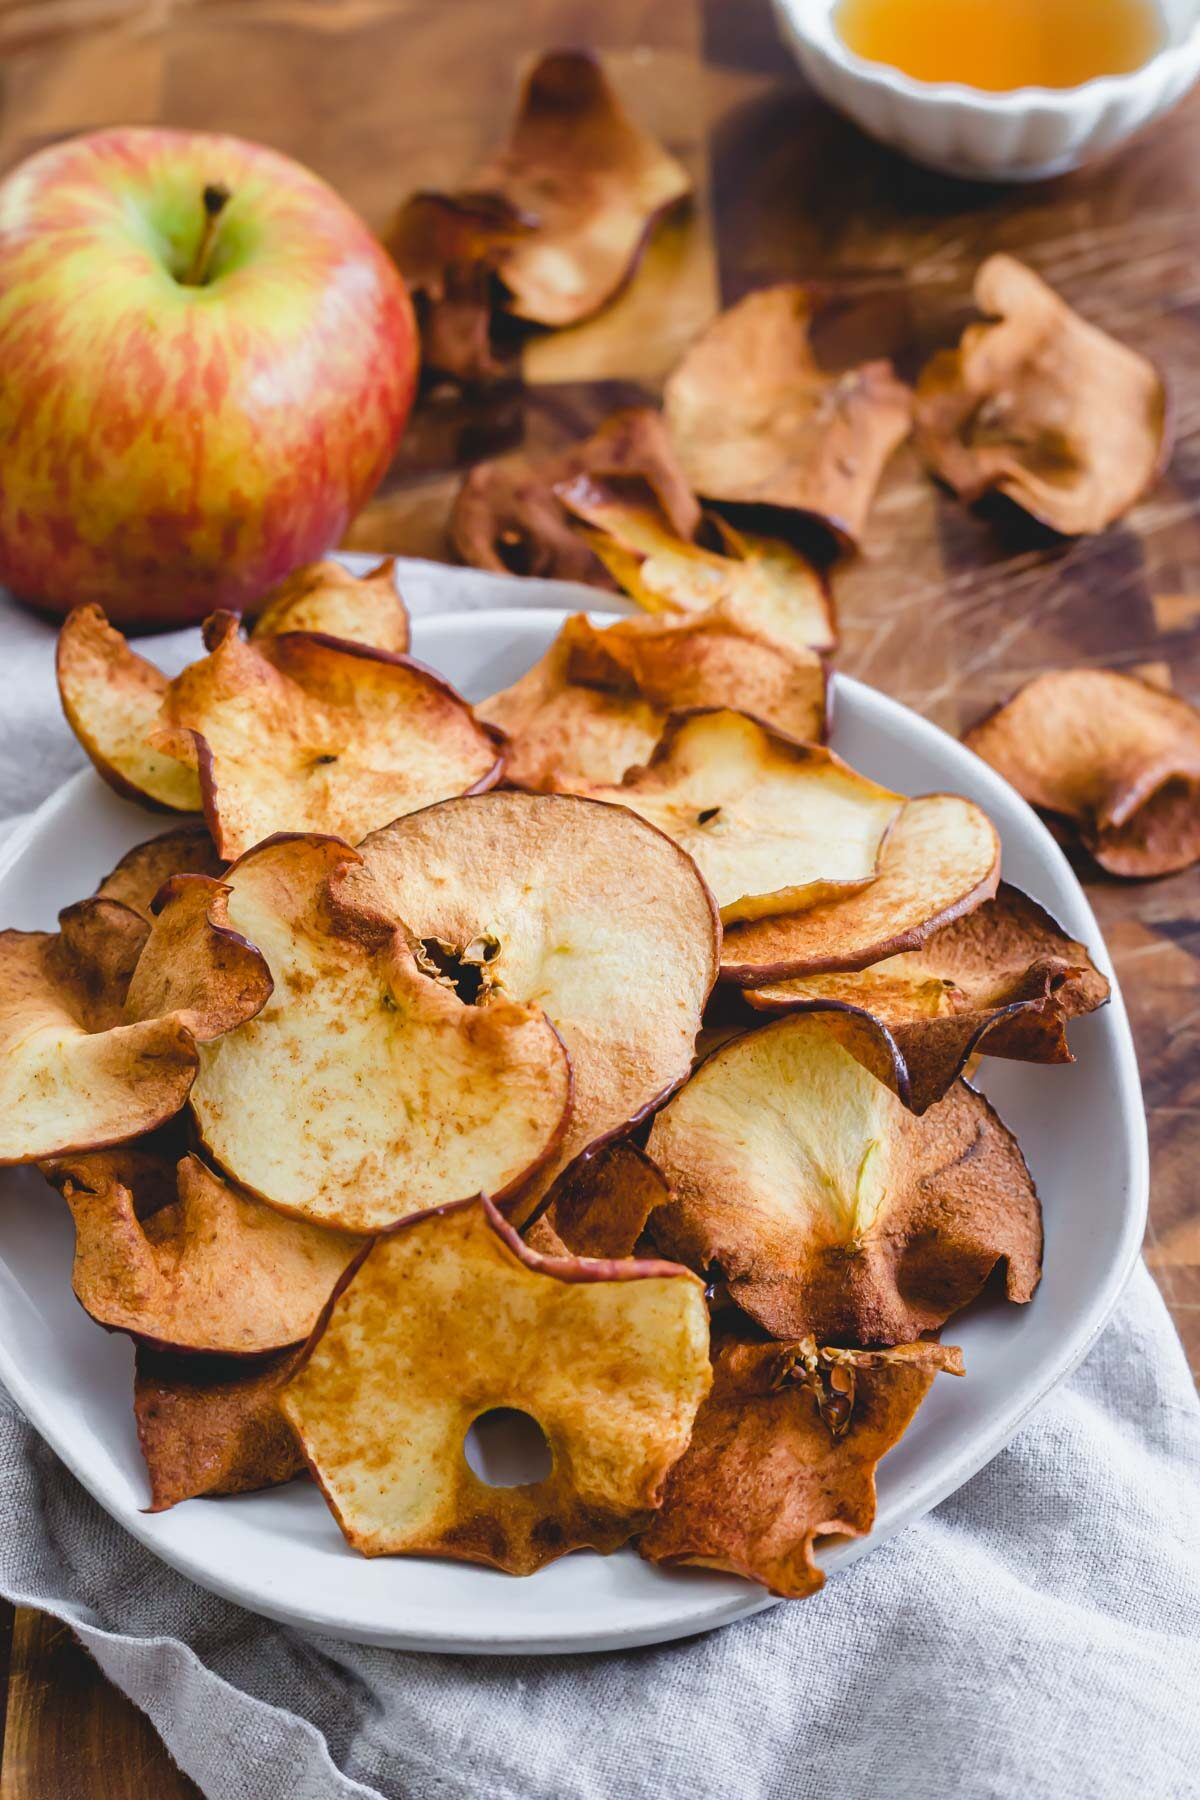 Easy maple cinnamon air fryer apple chips on a plate.